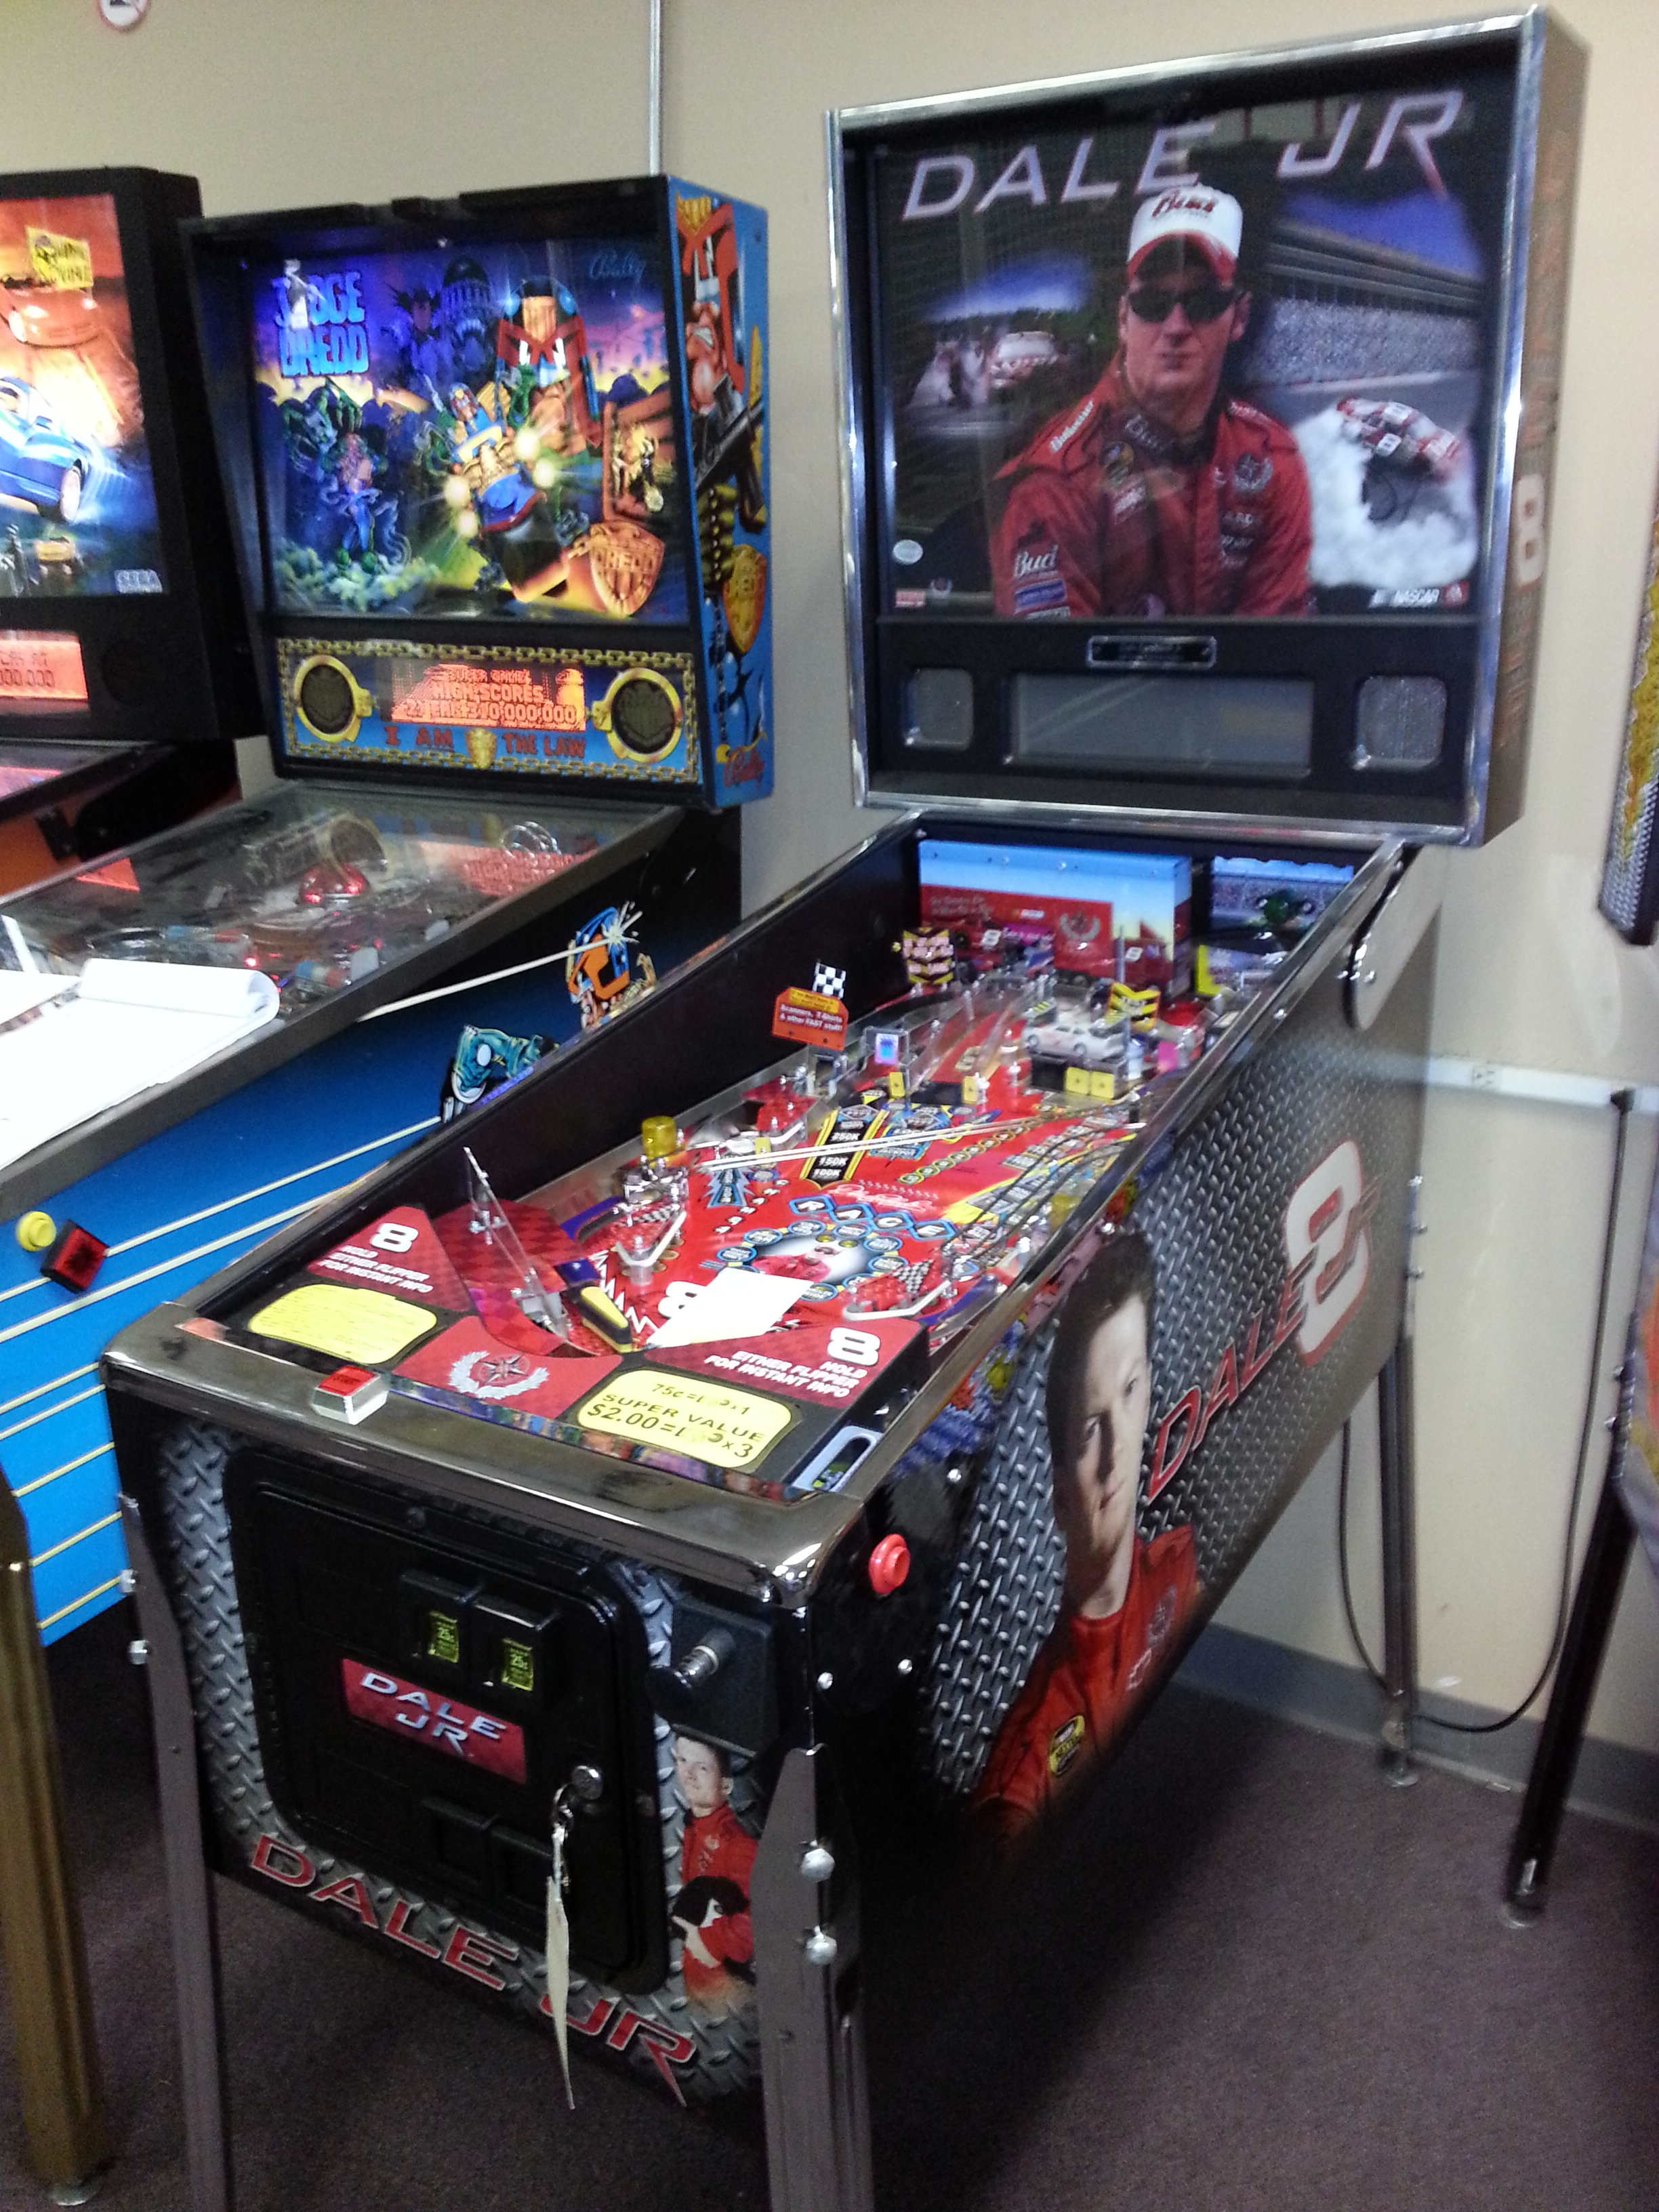 Shipping A Car >> NASCAR DALE EARNHARDT JR. #8 Pinball Machine Game for sale by Stern - LIMITED EDITION - FREE ...